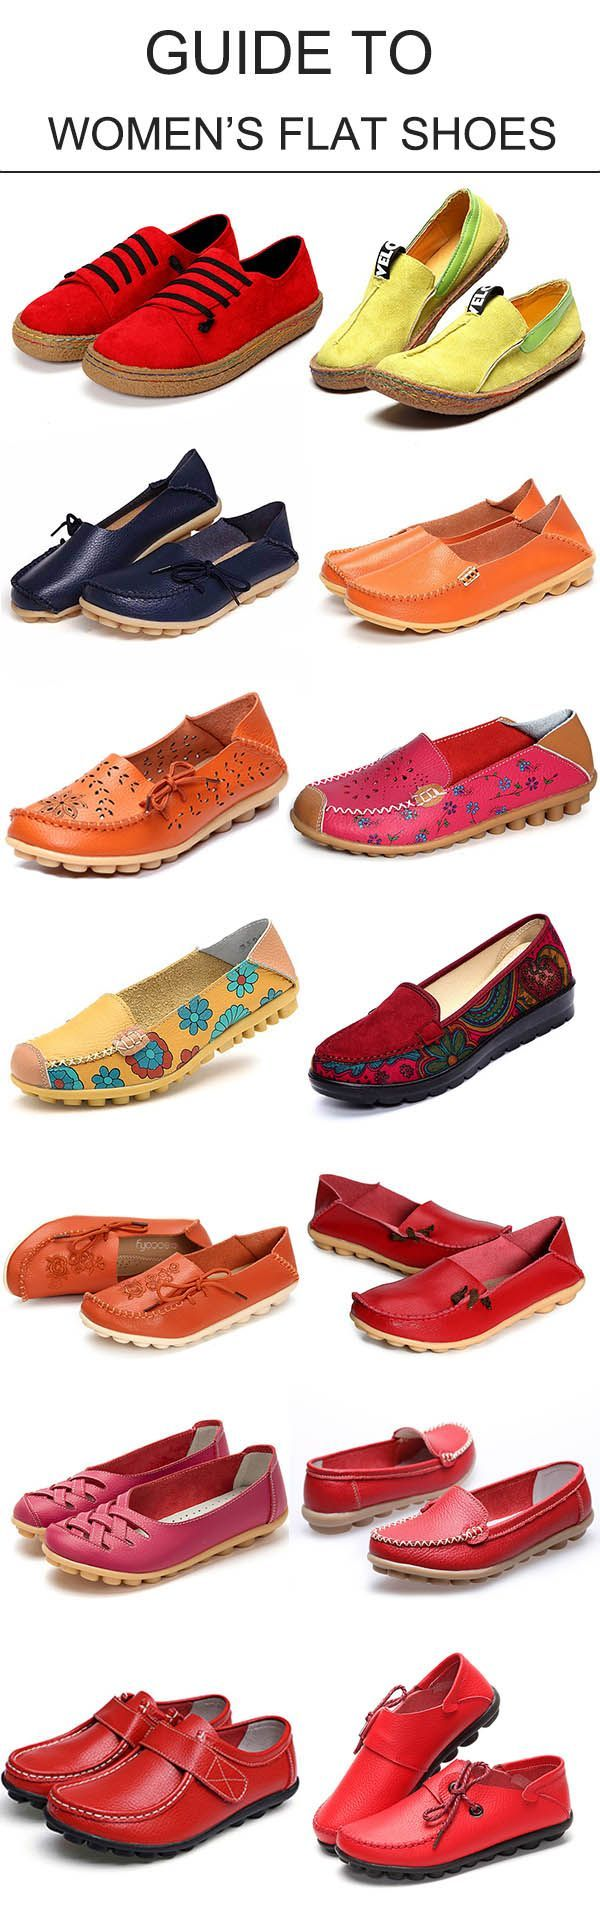 From US$17.69 + Free shipping.  Womens flat shoes, womens casual shoes, loafers for women, slip on shoes for women. Find Your Perfect Style! https://twitter.com/gmsingin1/status/915364725248057345